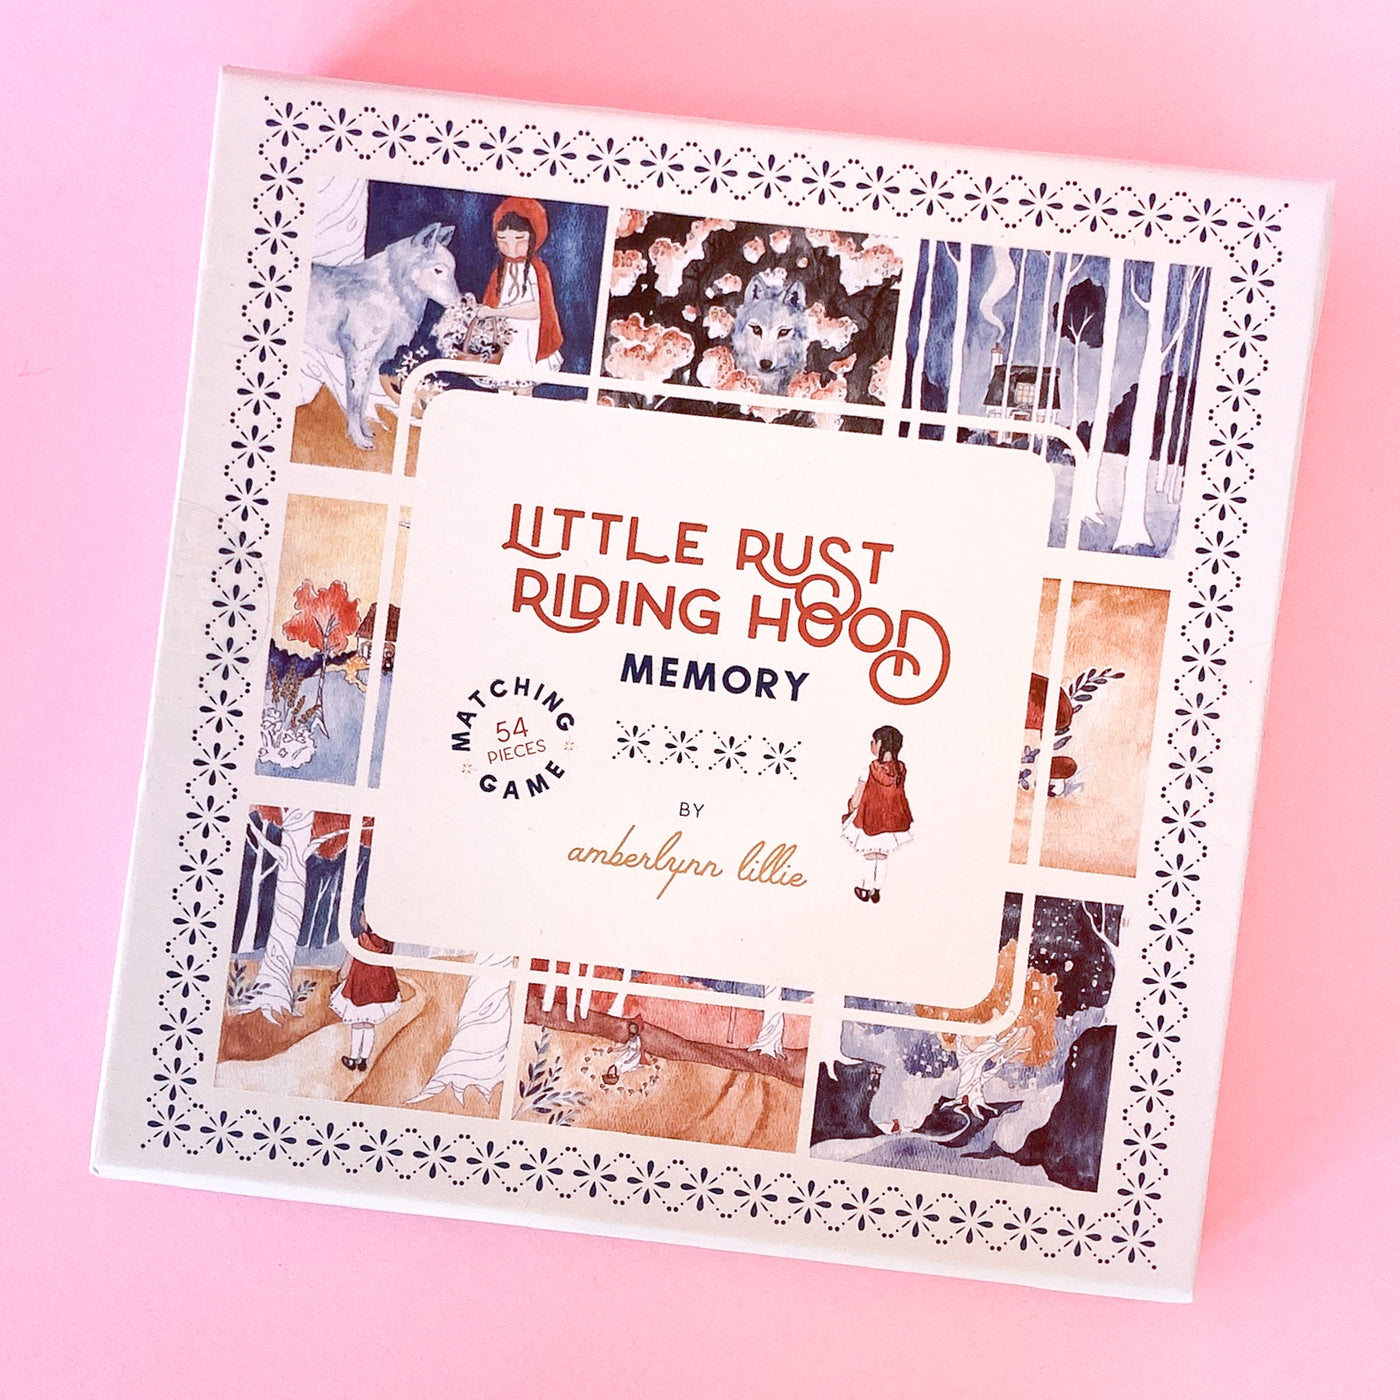 Little Rust Riding Hood Memory Game by Amberlynn Lillie